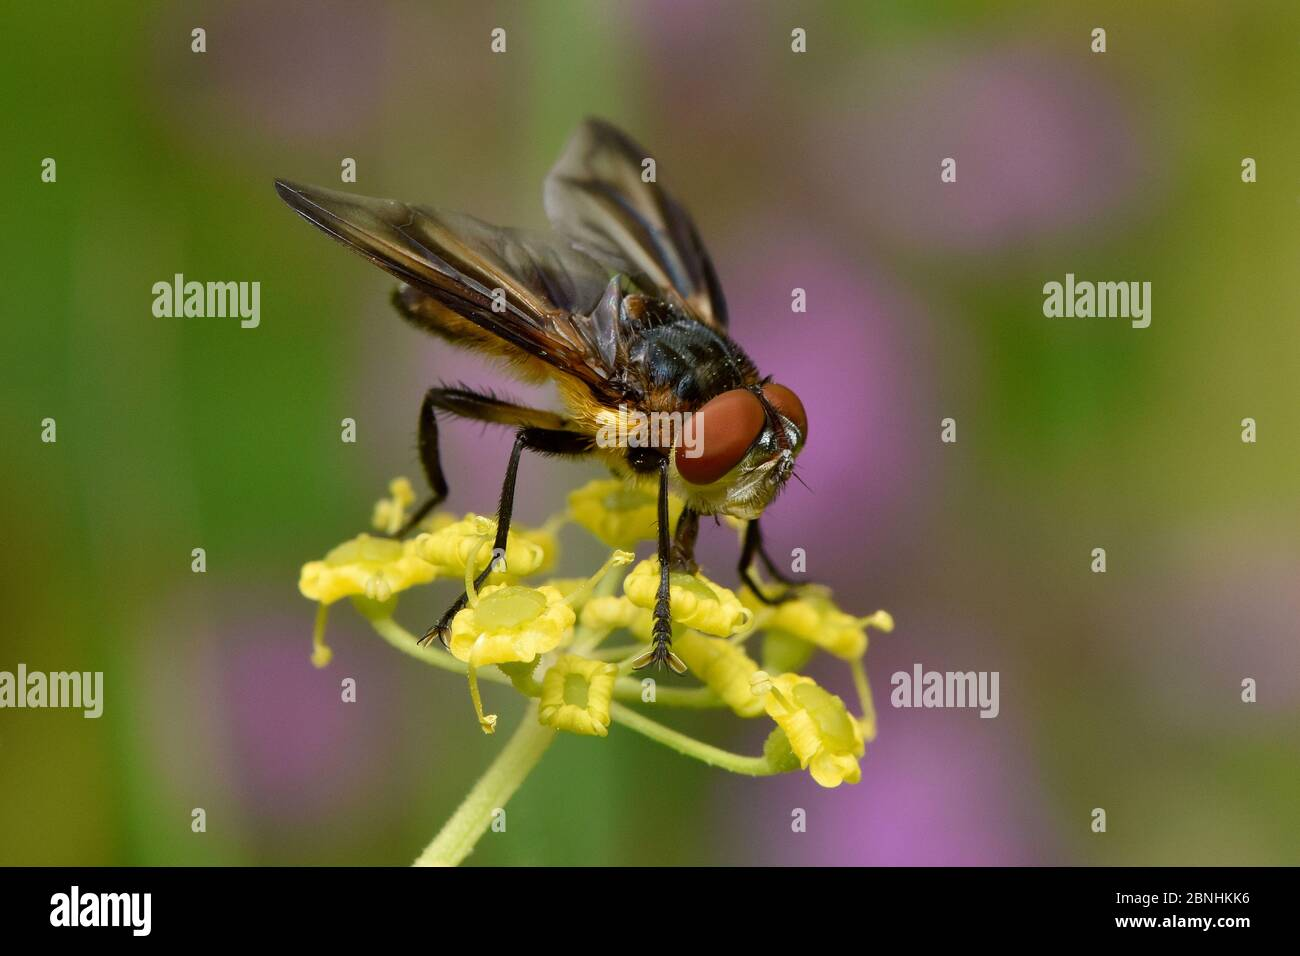 Tachnid fly (Phasia hemiptera) male feeding on flower of wild parsnip (Pastinaca sativa), Oxfordshire, England, UK, August Stock Photo